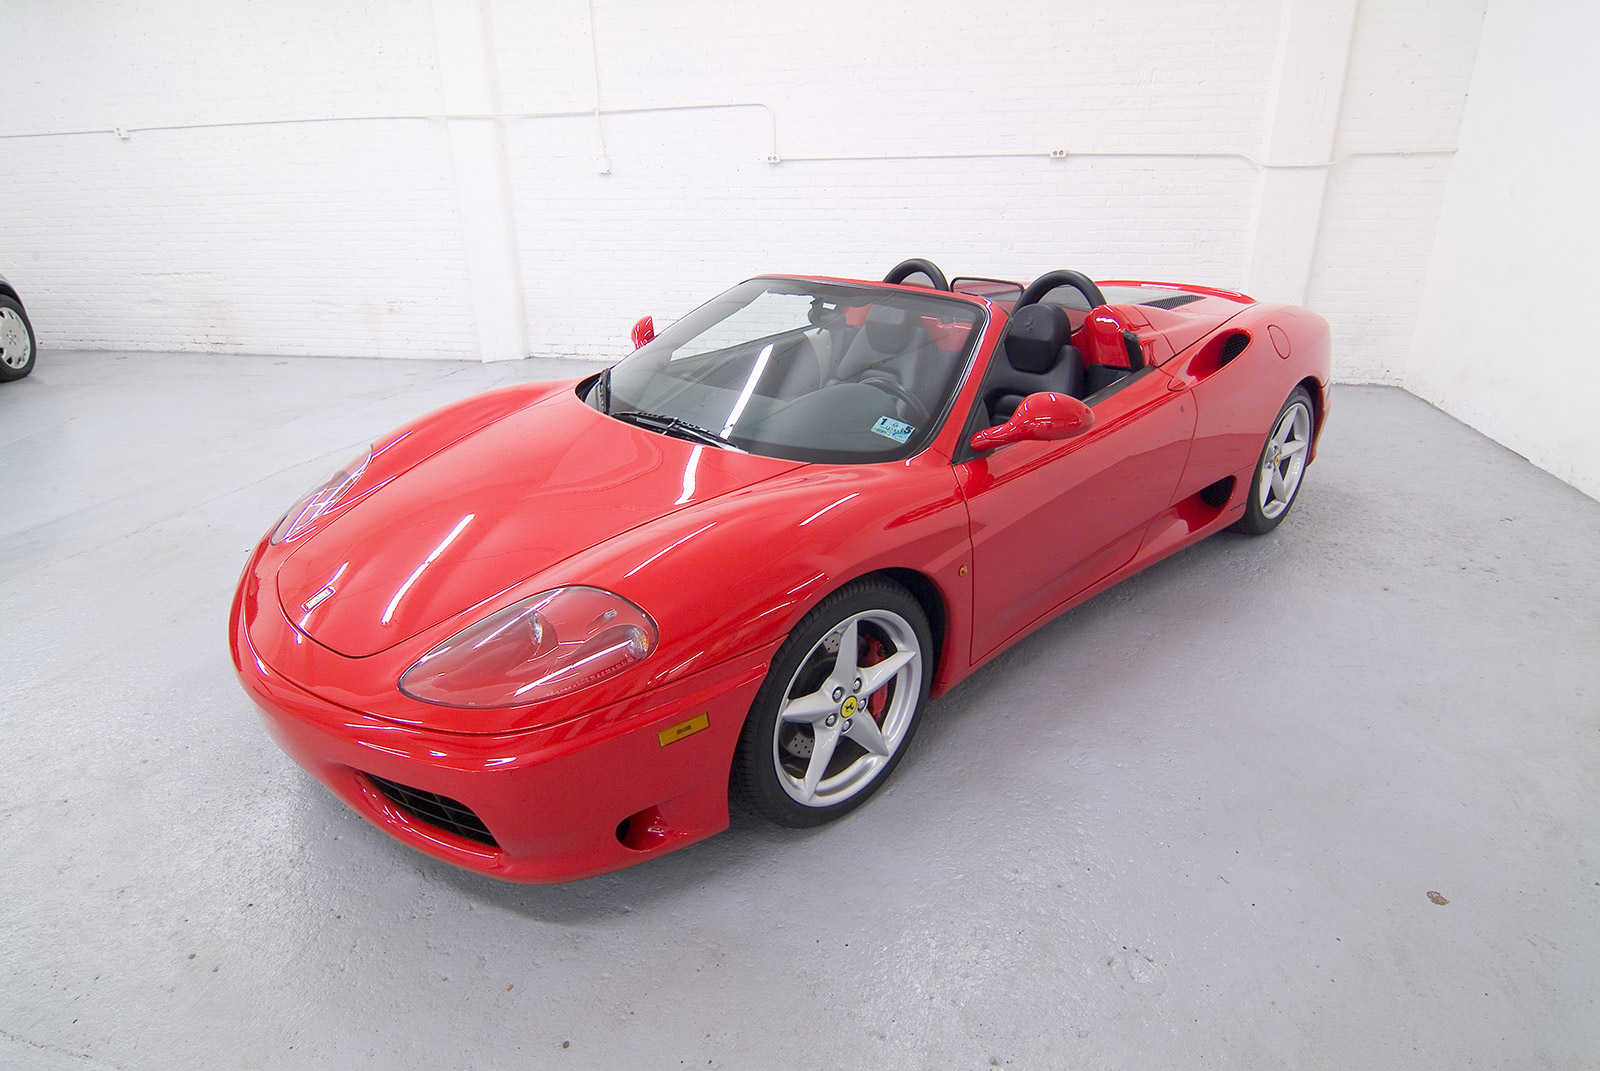 2001 Ferrari 360 Modena F1 Spider Convertible IRS-CI Seizure From Ringleader Of An Illegal Internet Pharmacy